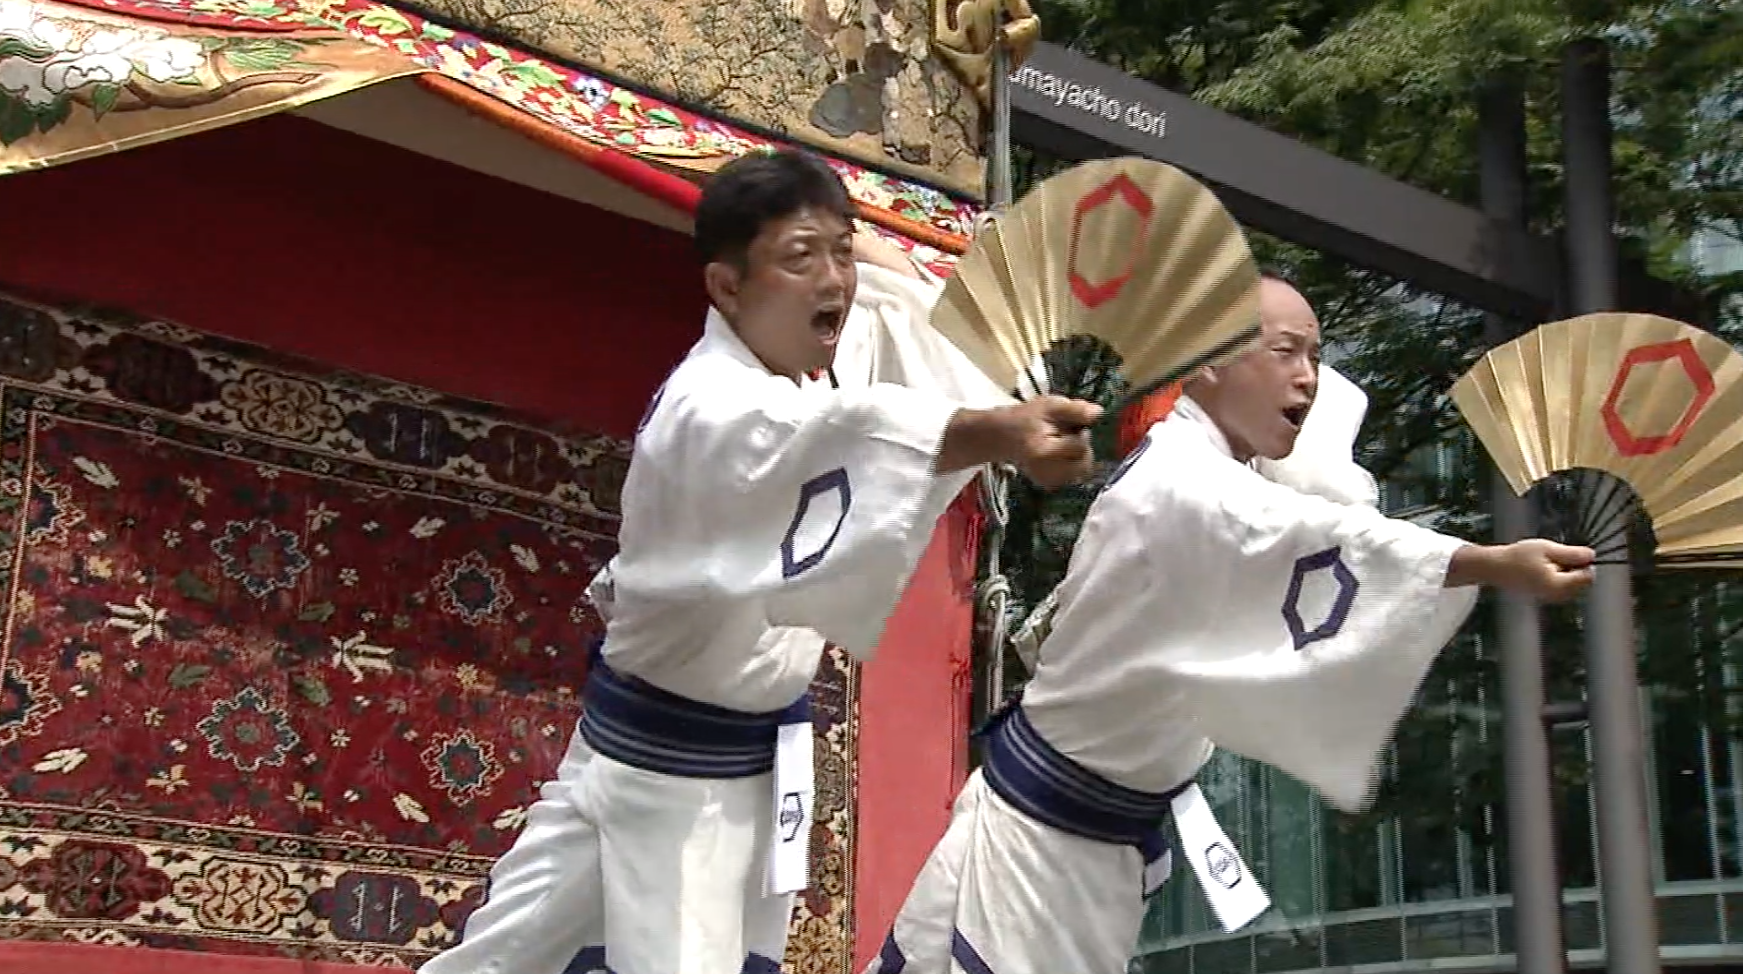 Famous Kyoto festival revives ancient parade tradition